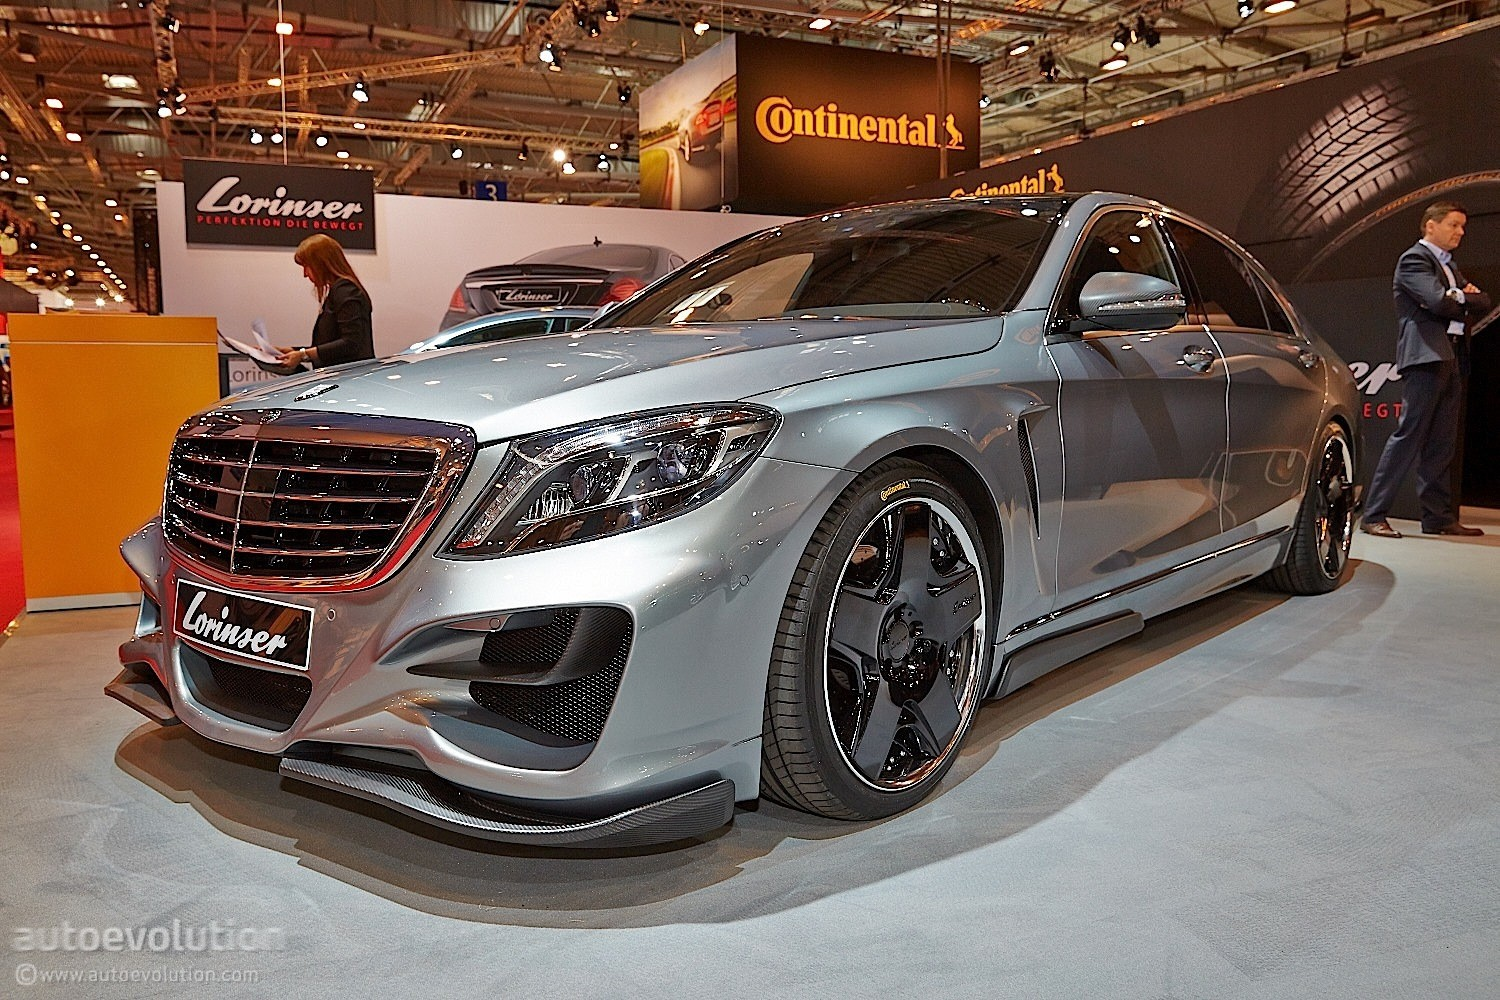 Mercedes Air Suspension >> Lorinser Mercedes-Benz S-Class Posing as a Bad Boy at Essen 2014 [Live Photos] - autoevolution